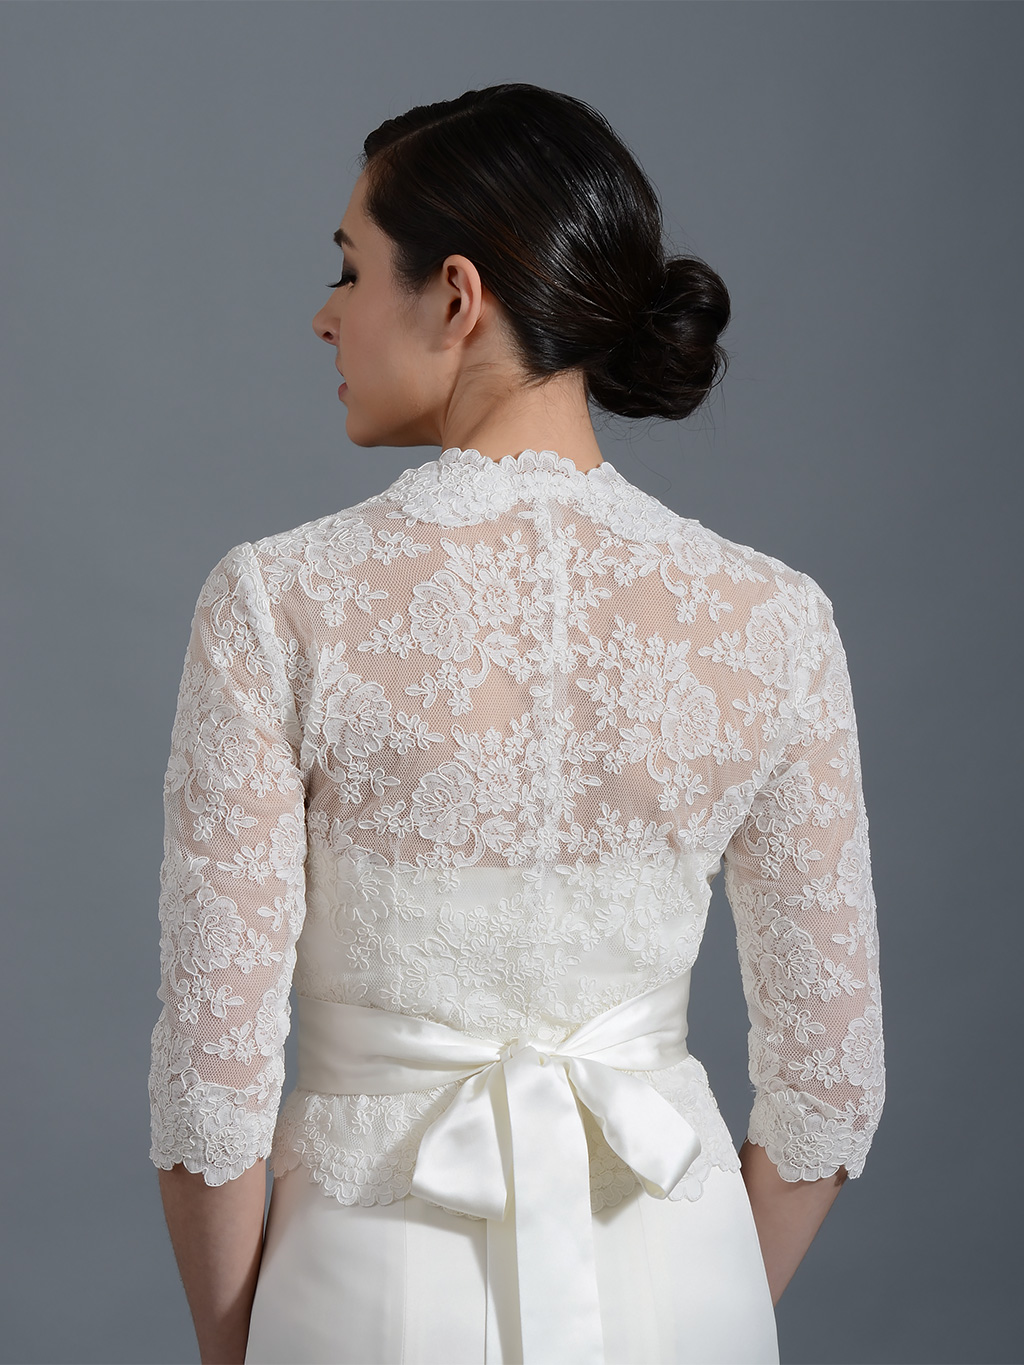 Tion Bridal Ivory Lace Bolero Jacket-Off-white-L. Sold by Tion Design + 2. $ $ Designer SALE! QUINCEAÑERA BALL GOWN WITH MATCHING BOLERO JACKET SWEET 16 15 DRESS LACE UP BACK MASQUERADE DANCE PARTY & PLUS .